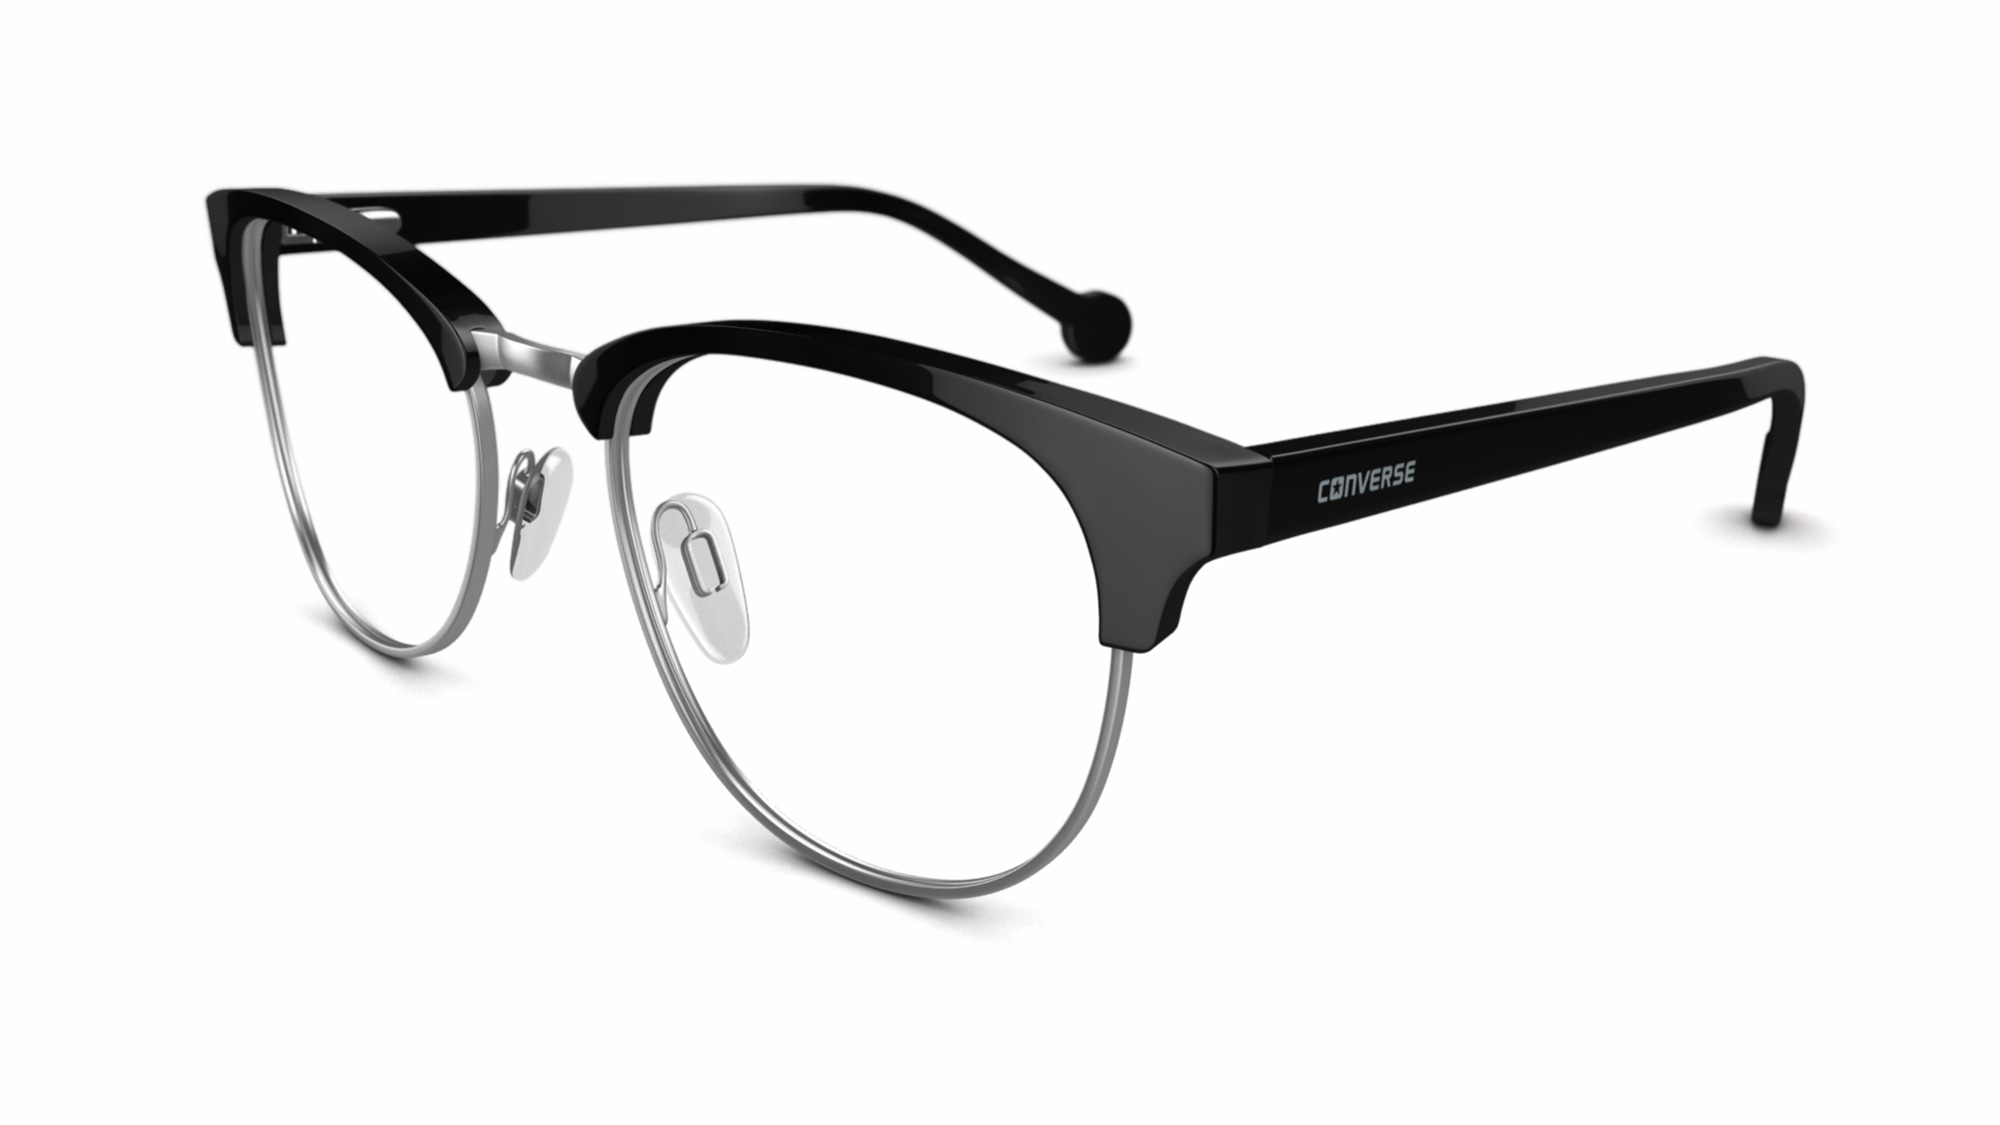 CONVERSE 13 Glasses by Converse | Specsavers IE